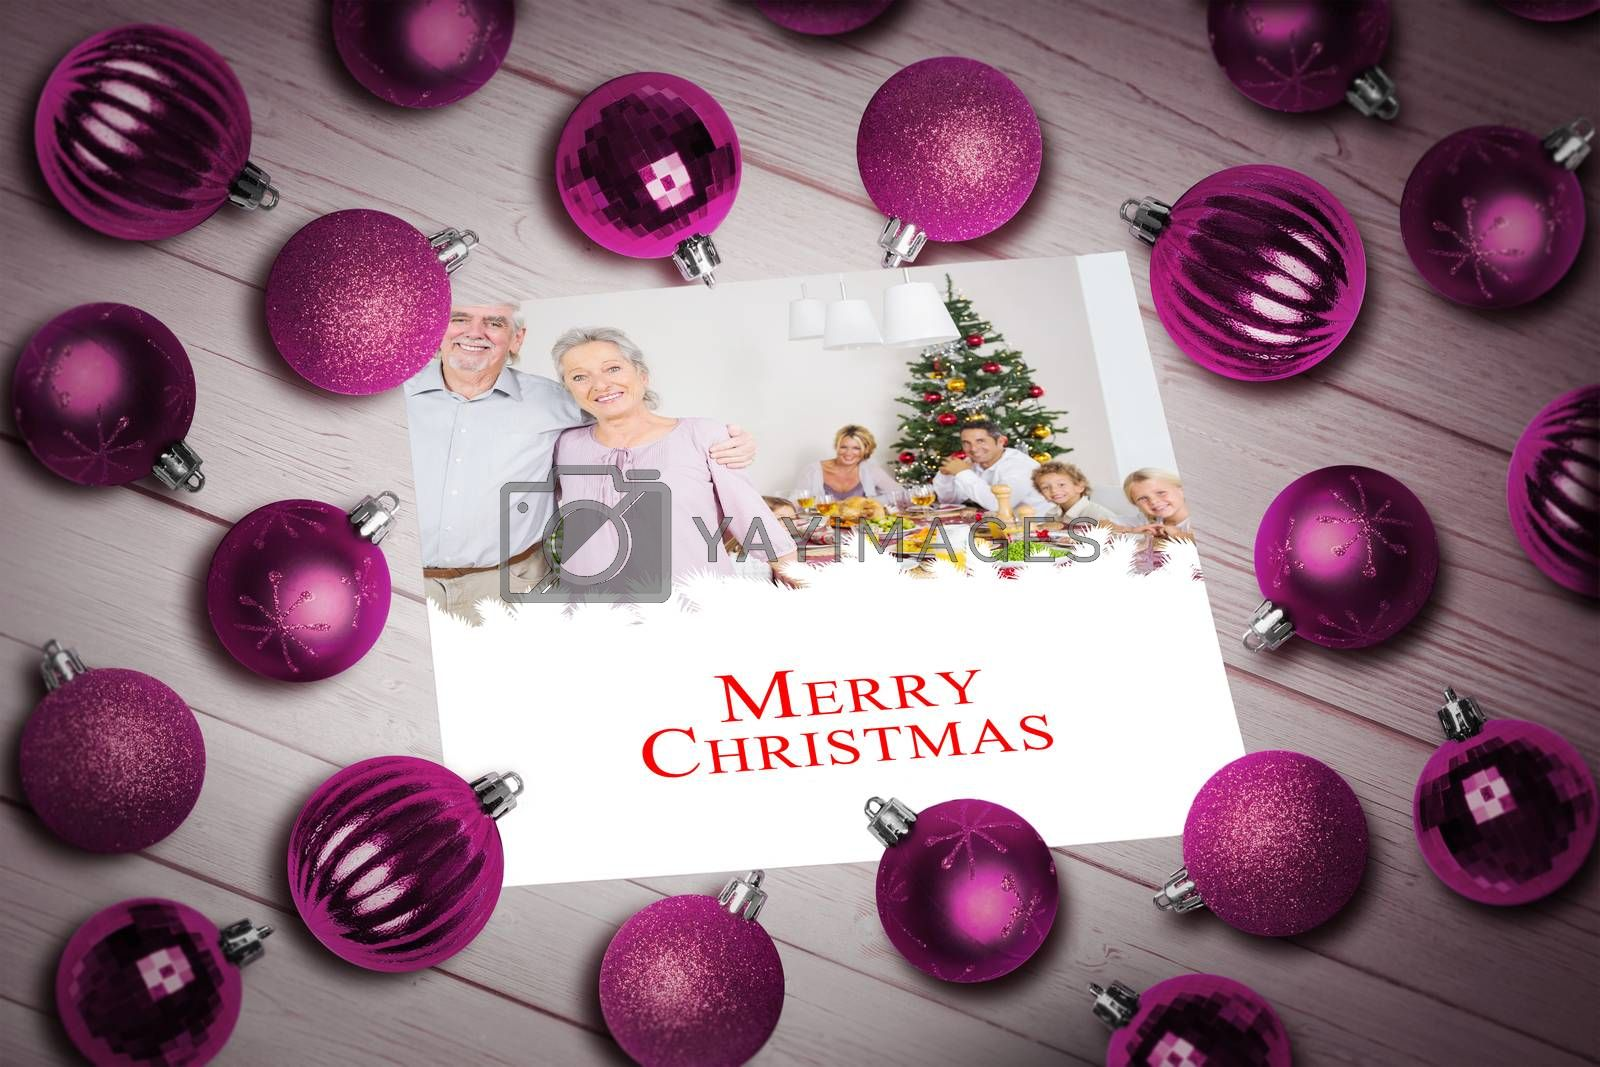 Christmas baubles on table against a happy family christmas card